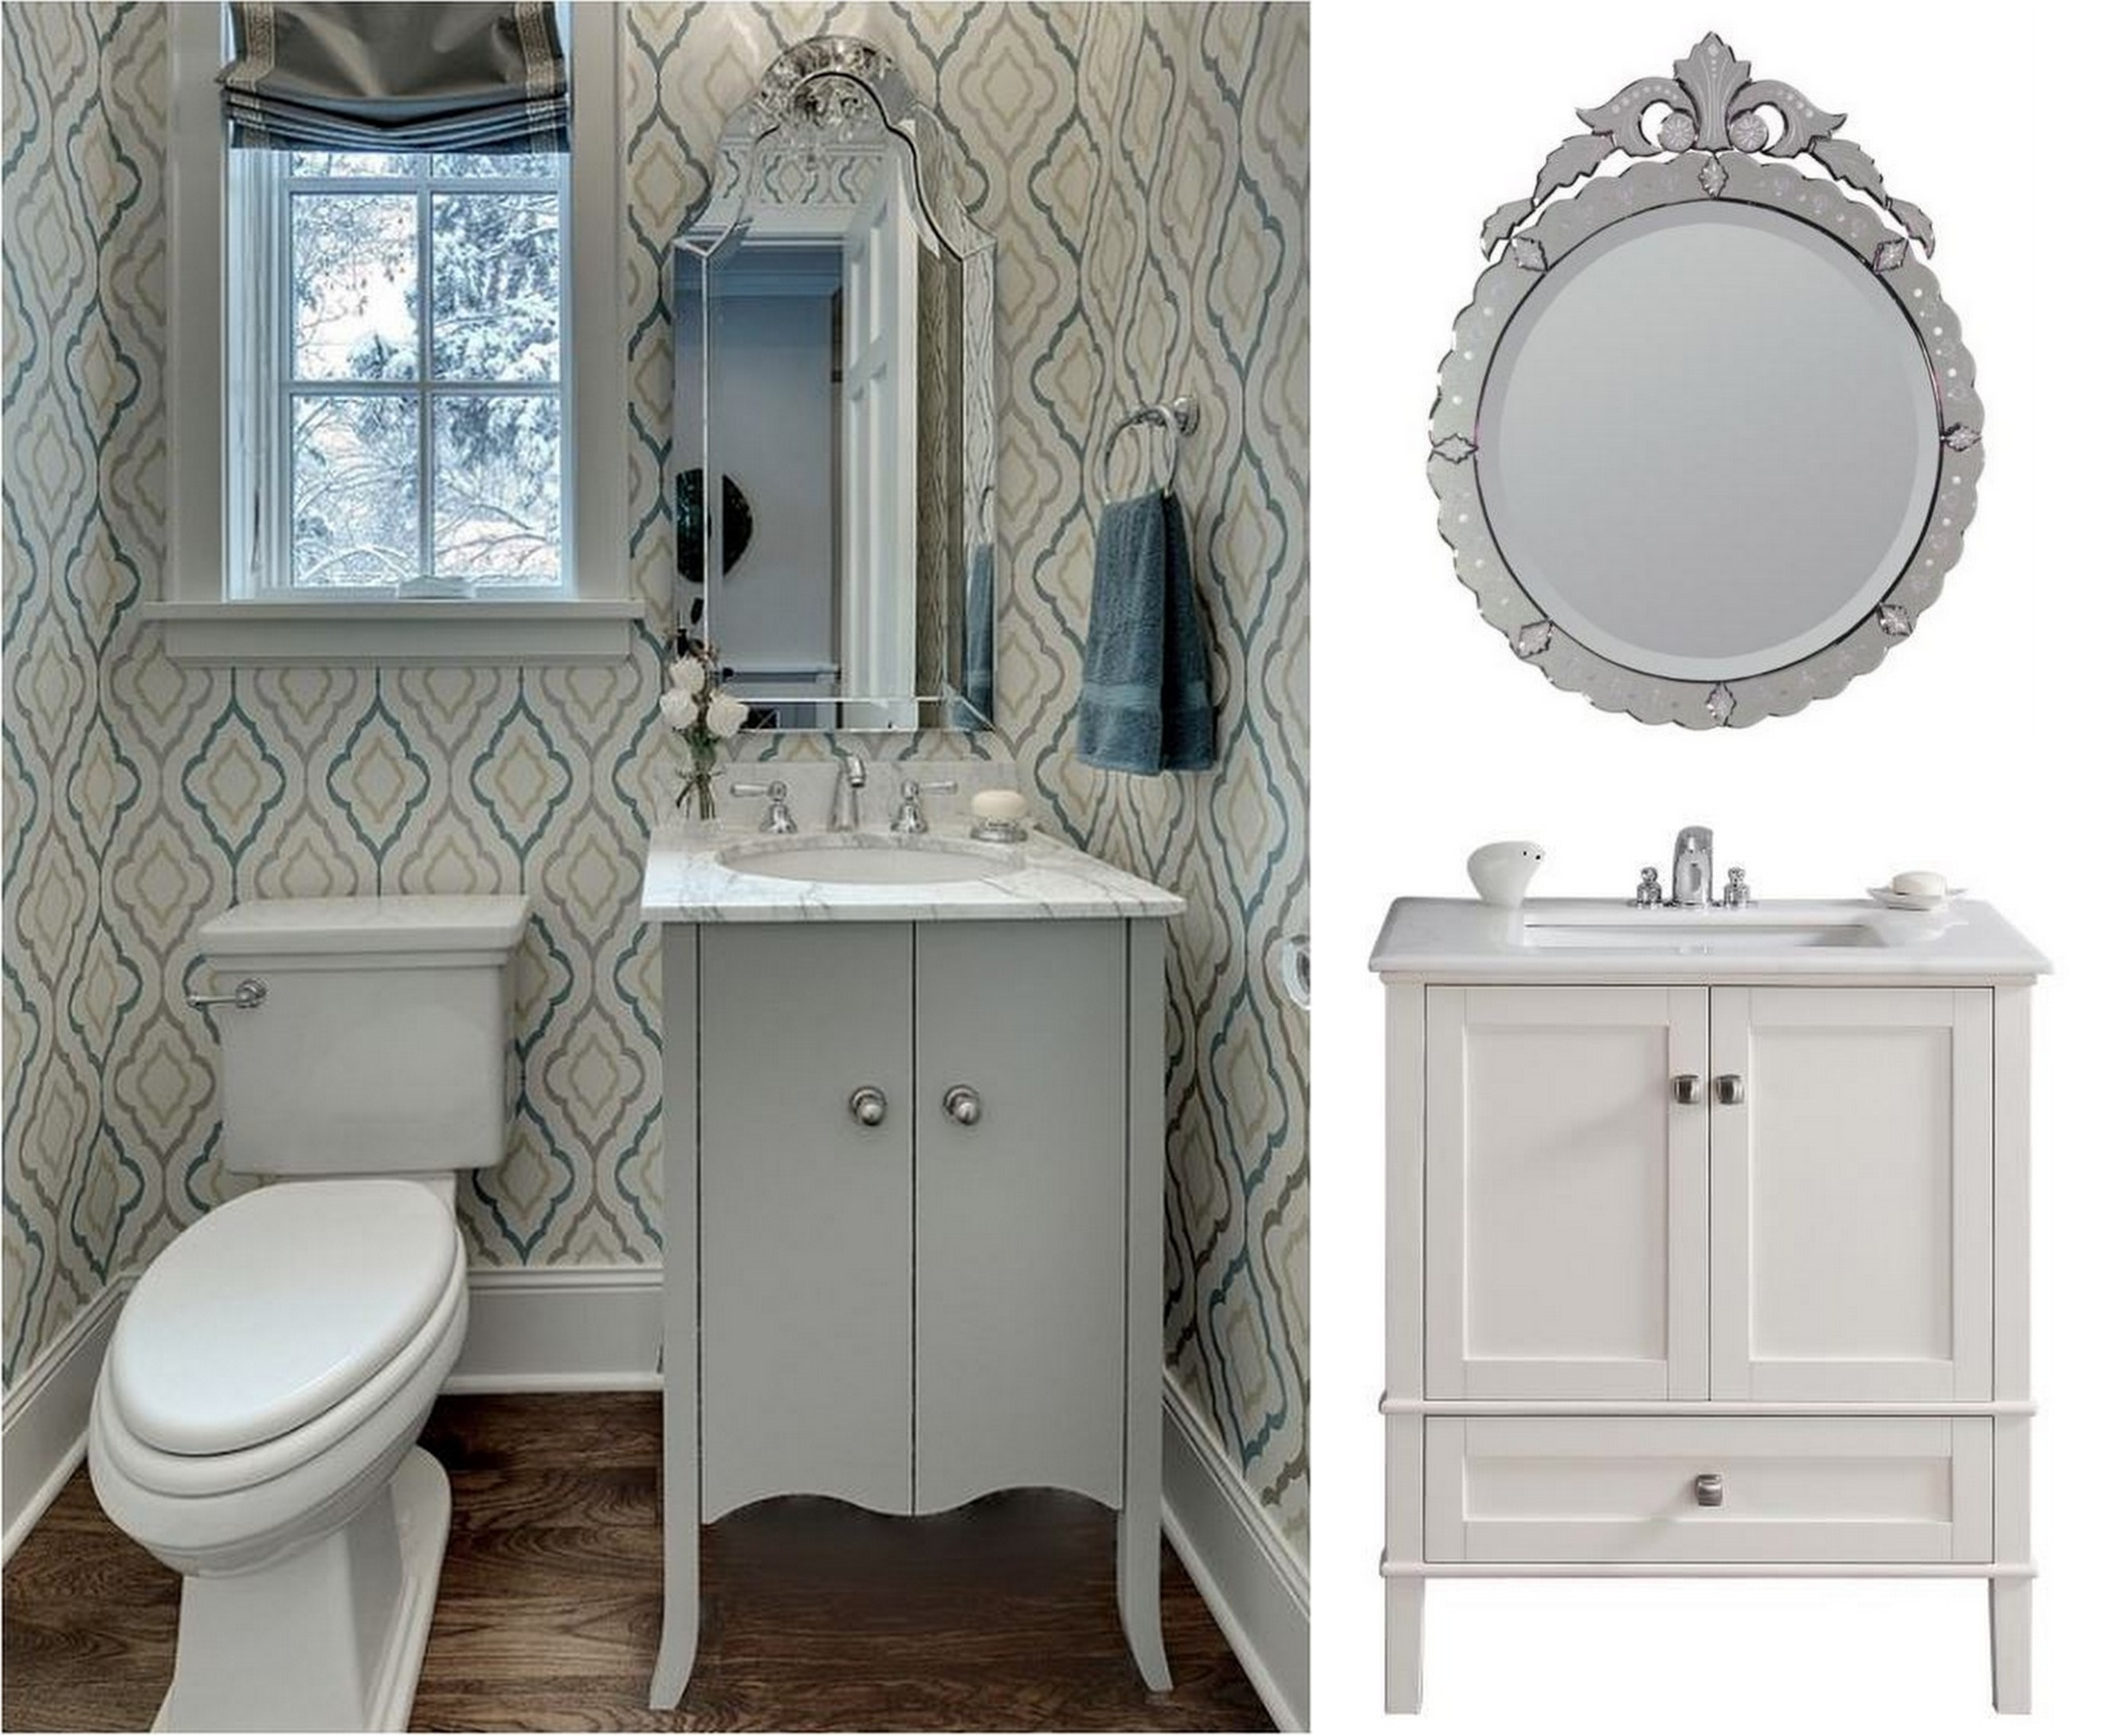 How To Decorate A Bathroom With Appeal Home Decorating Blog With Venetian Bathroom Mirror (View 3 of 15)